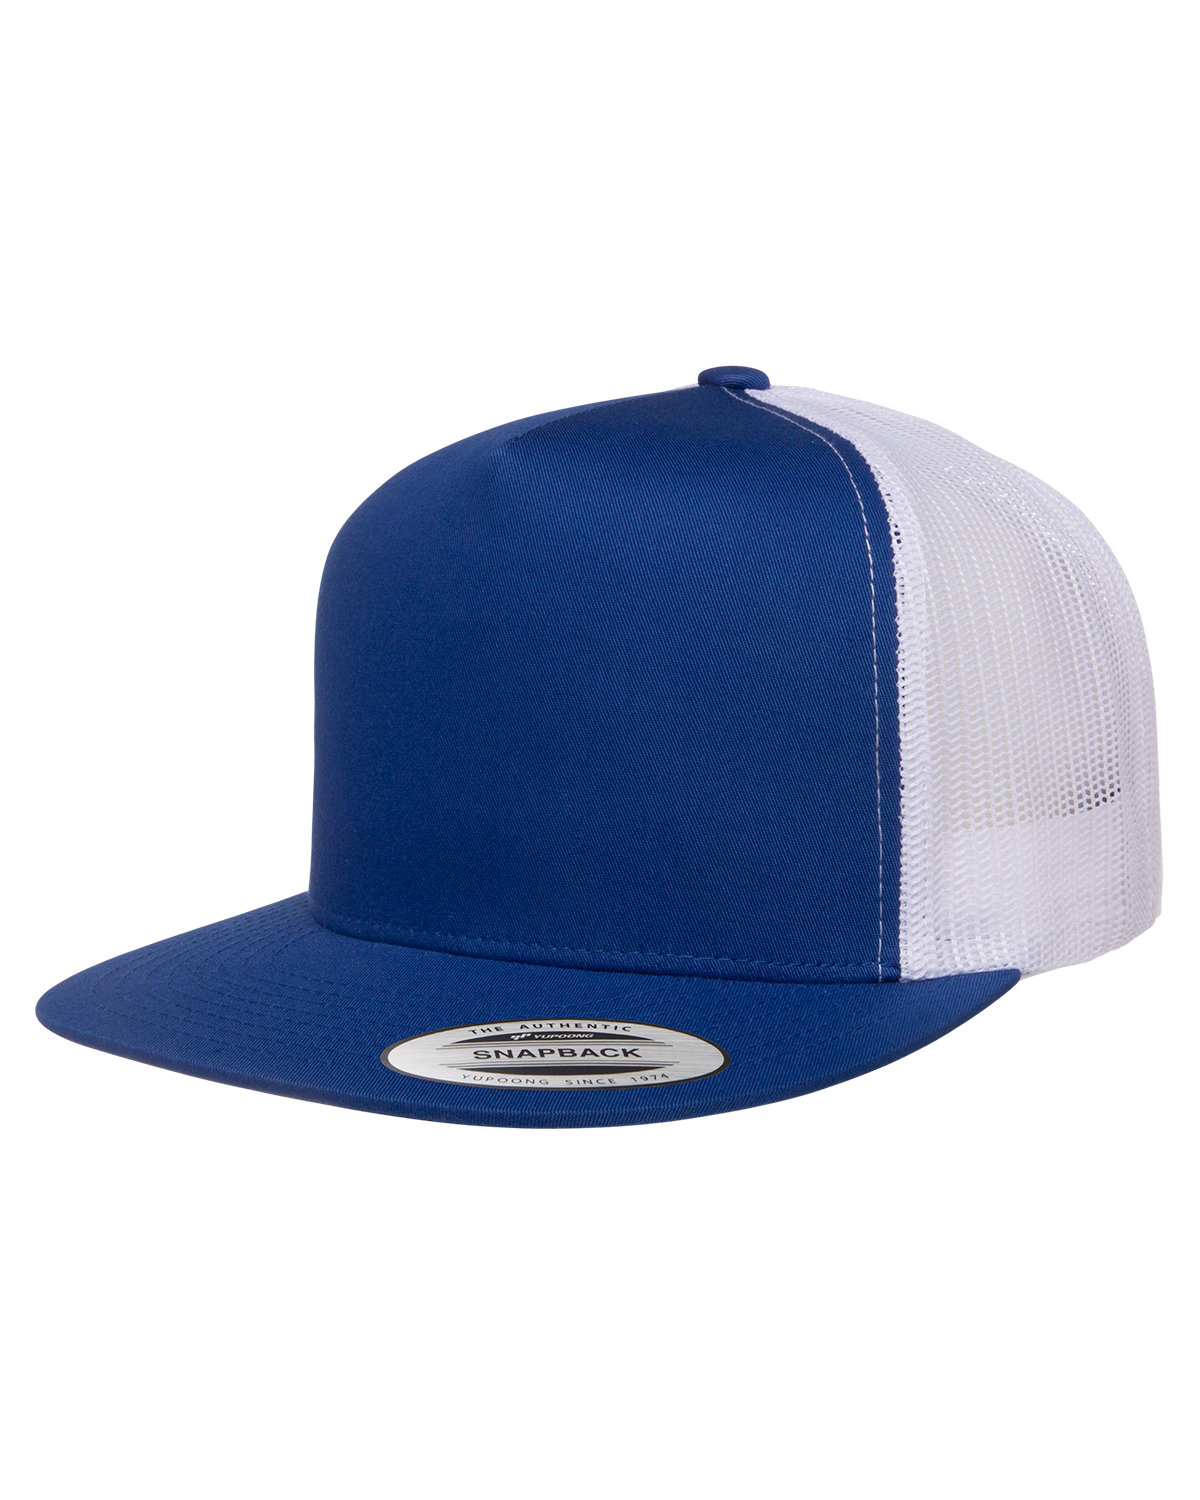 Yupoong Adult 5-Panel Classic Trucker Cap ROYAL/ WHITE